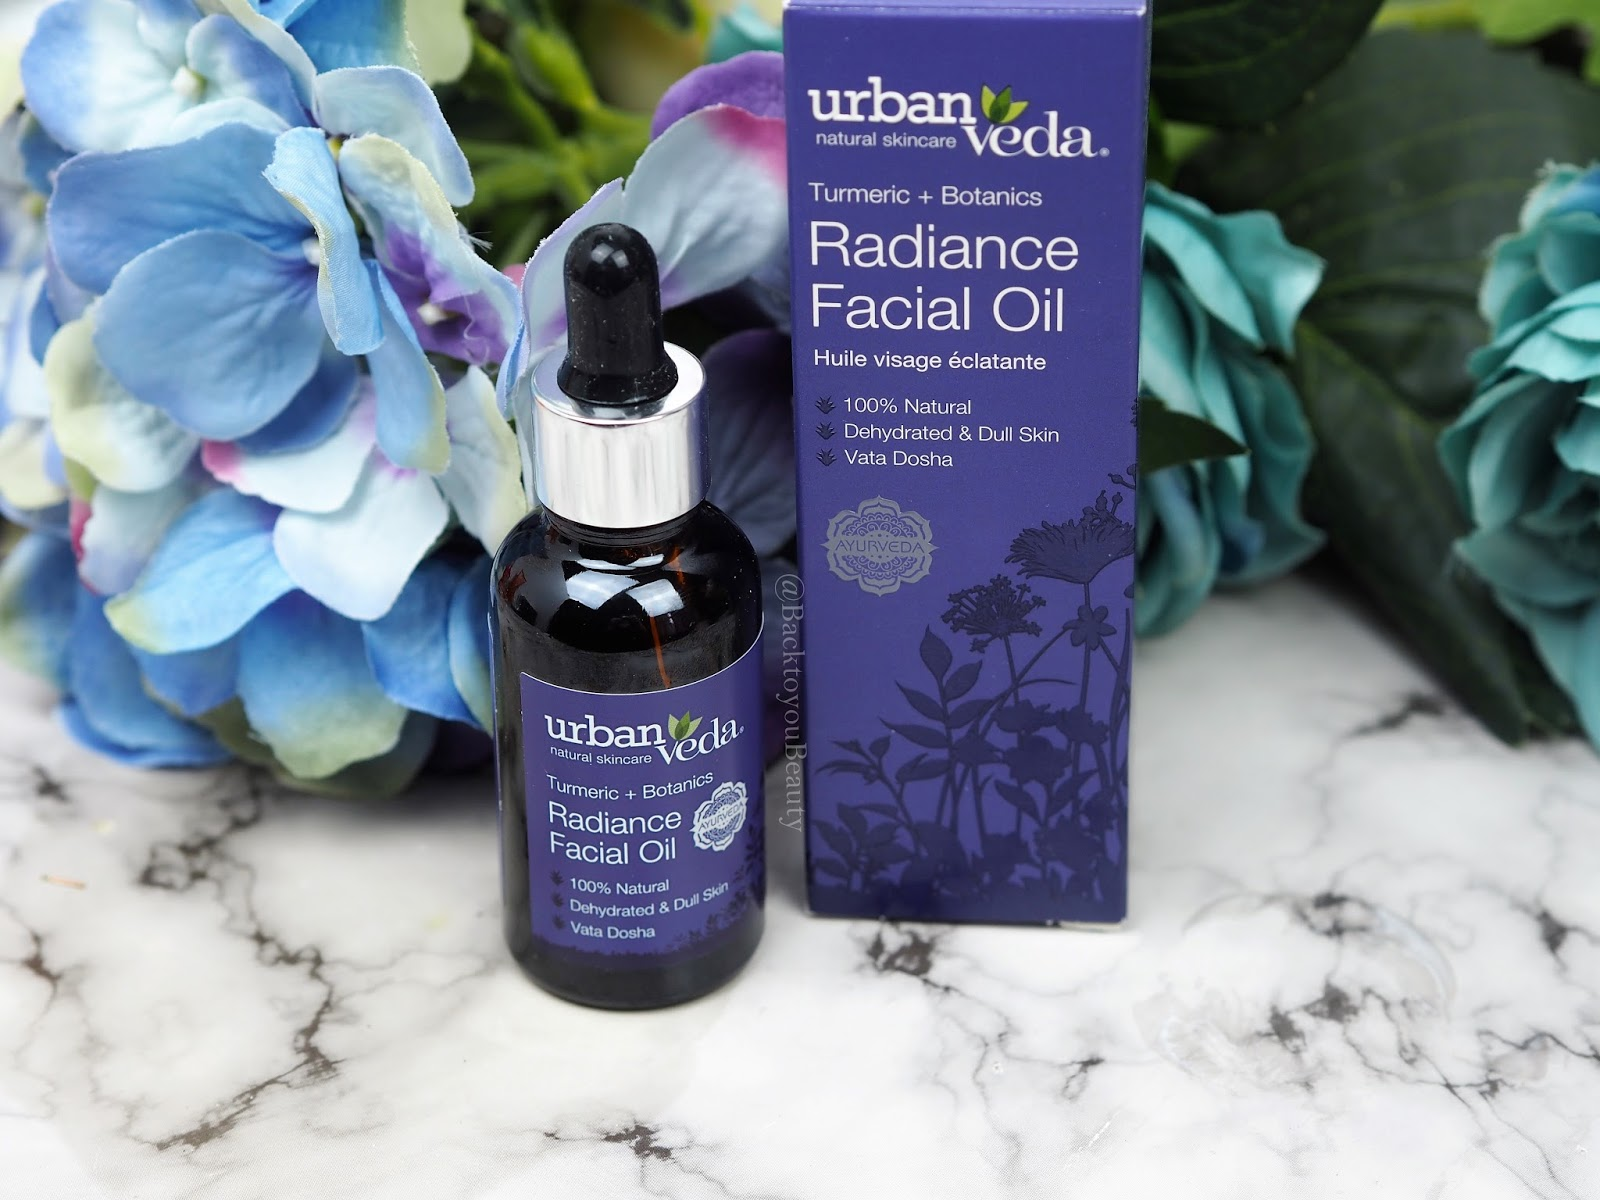 Urban Veda Tumeric + Botanics Radiance Facial Oil 30ml